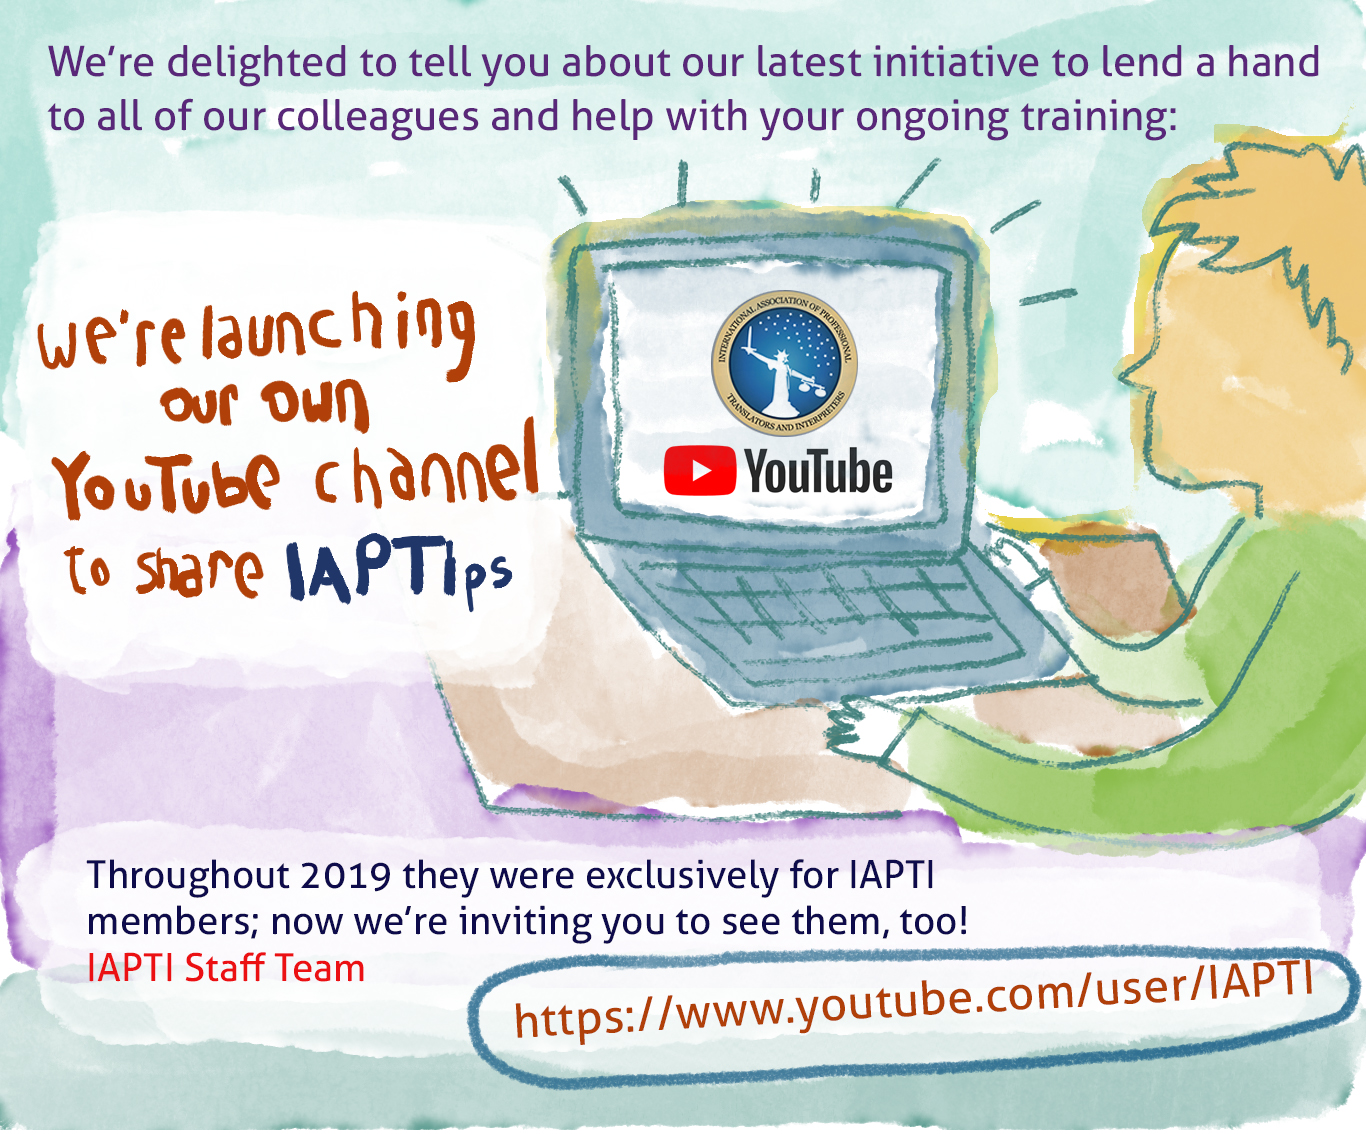 IAPTI's YouTube Channel